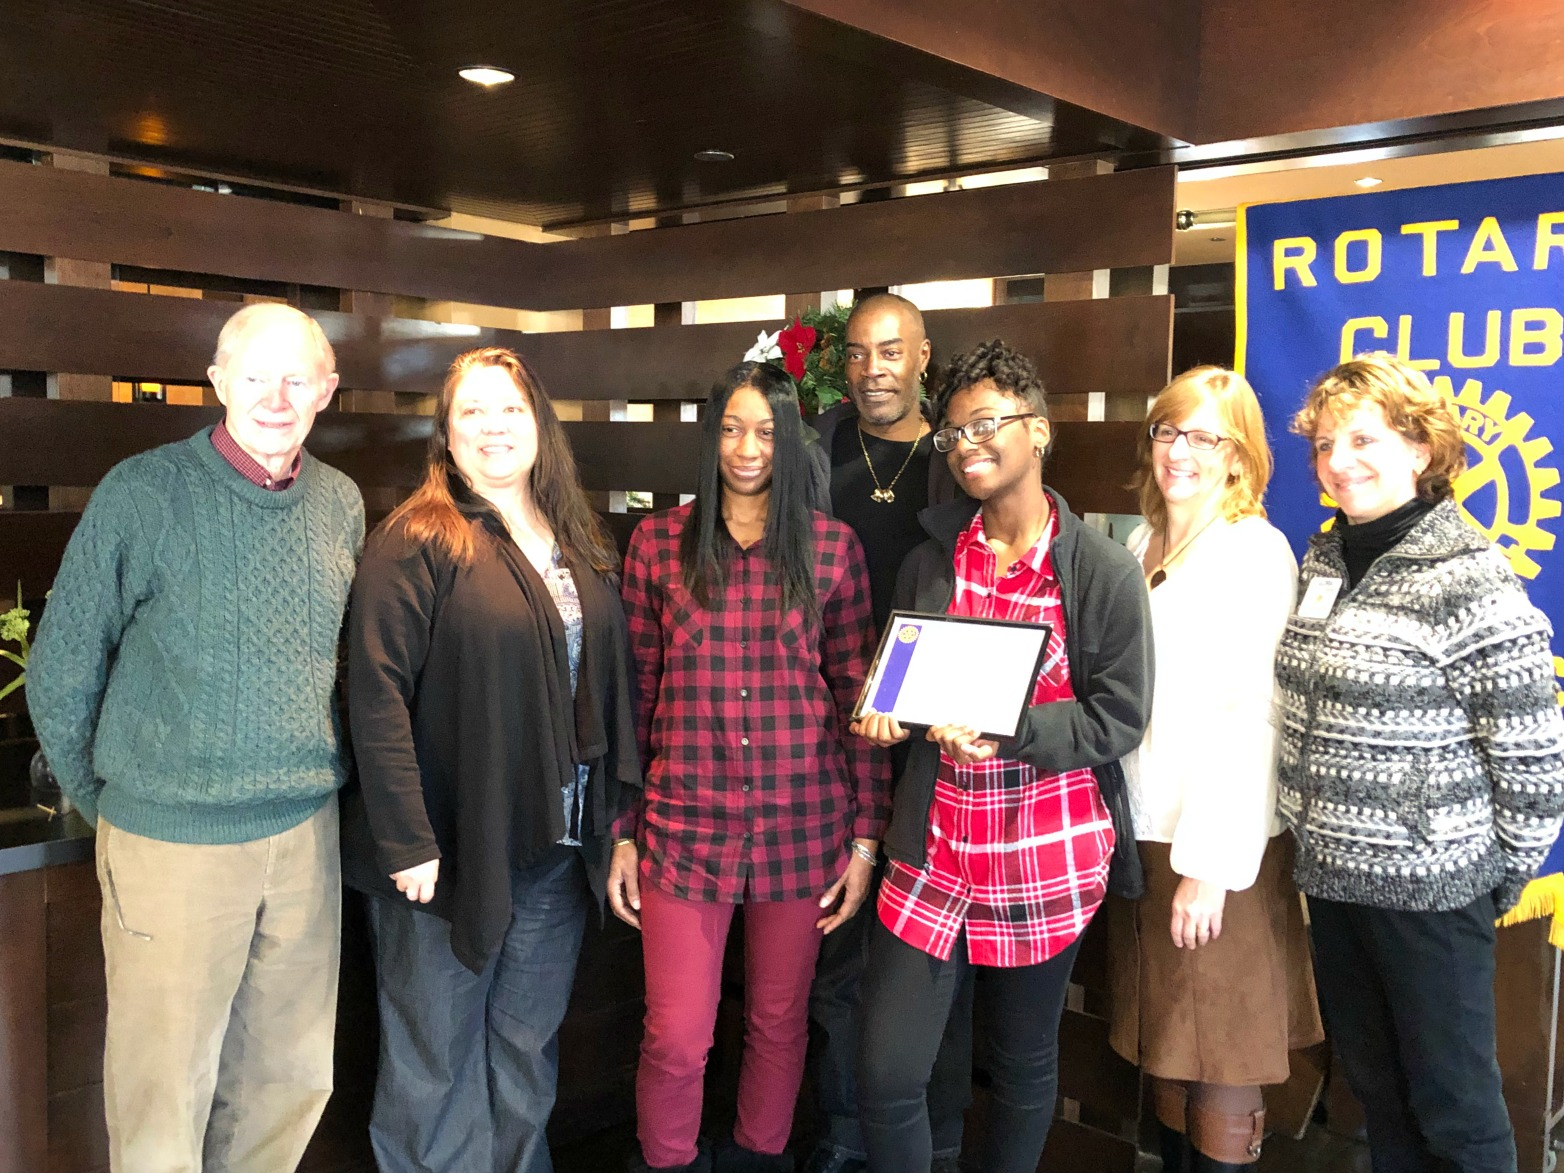 Rotary Club's November Student of the Month